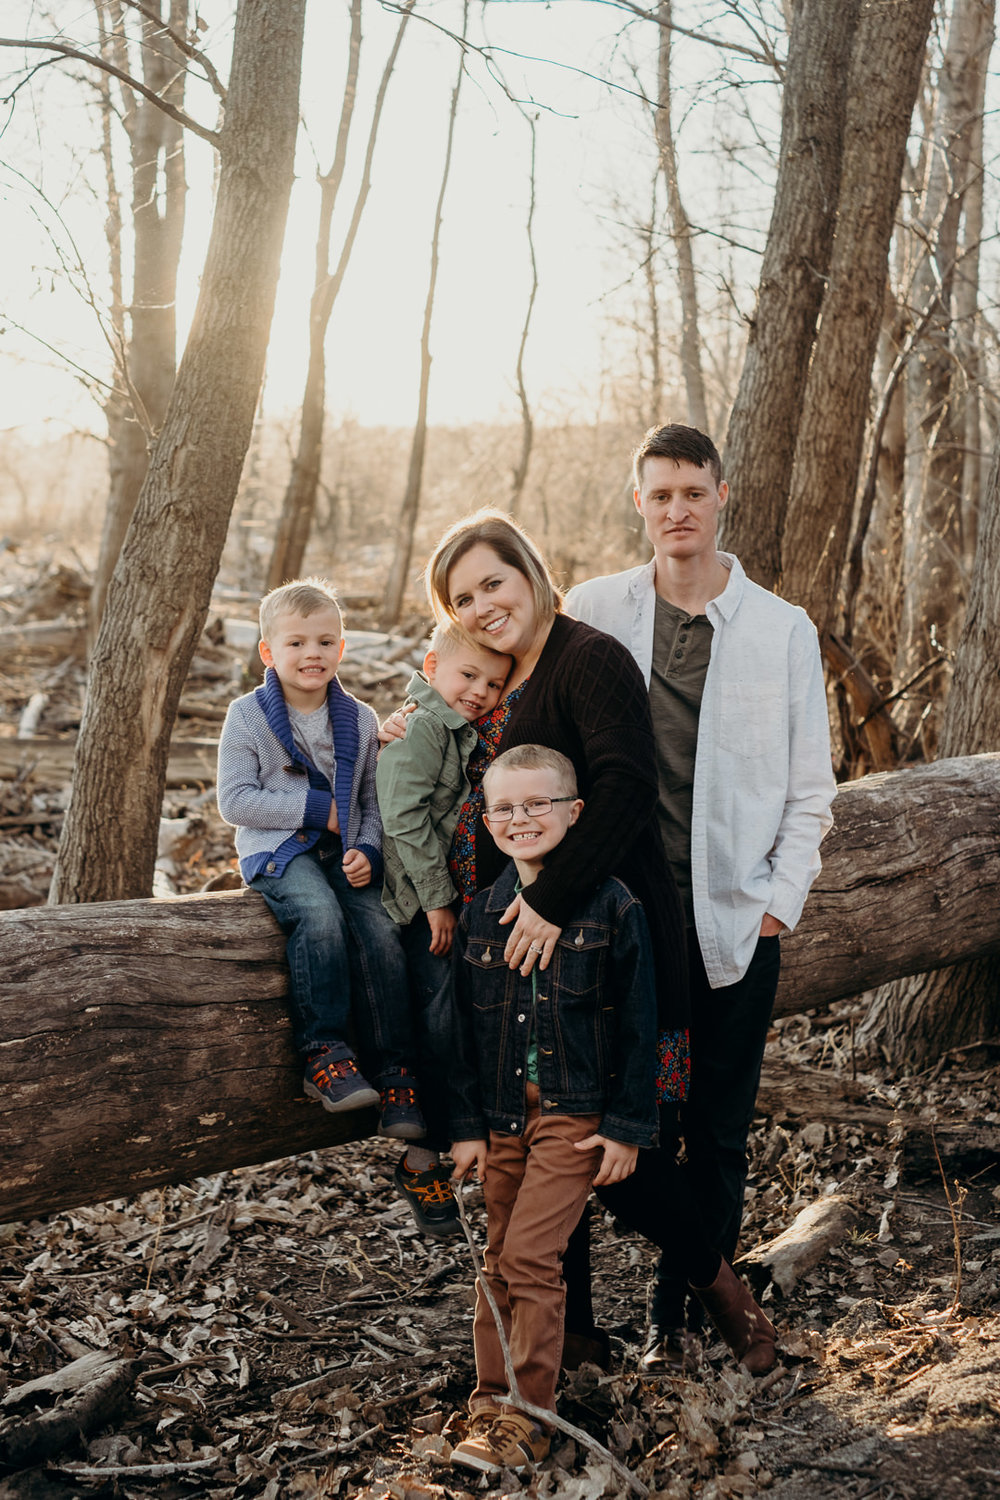 20171123_Kansas City Lifestyle Family Photographer_37.jpg